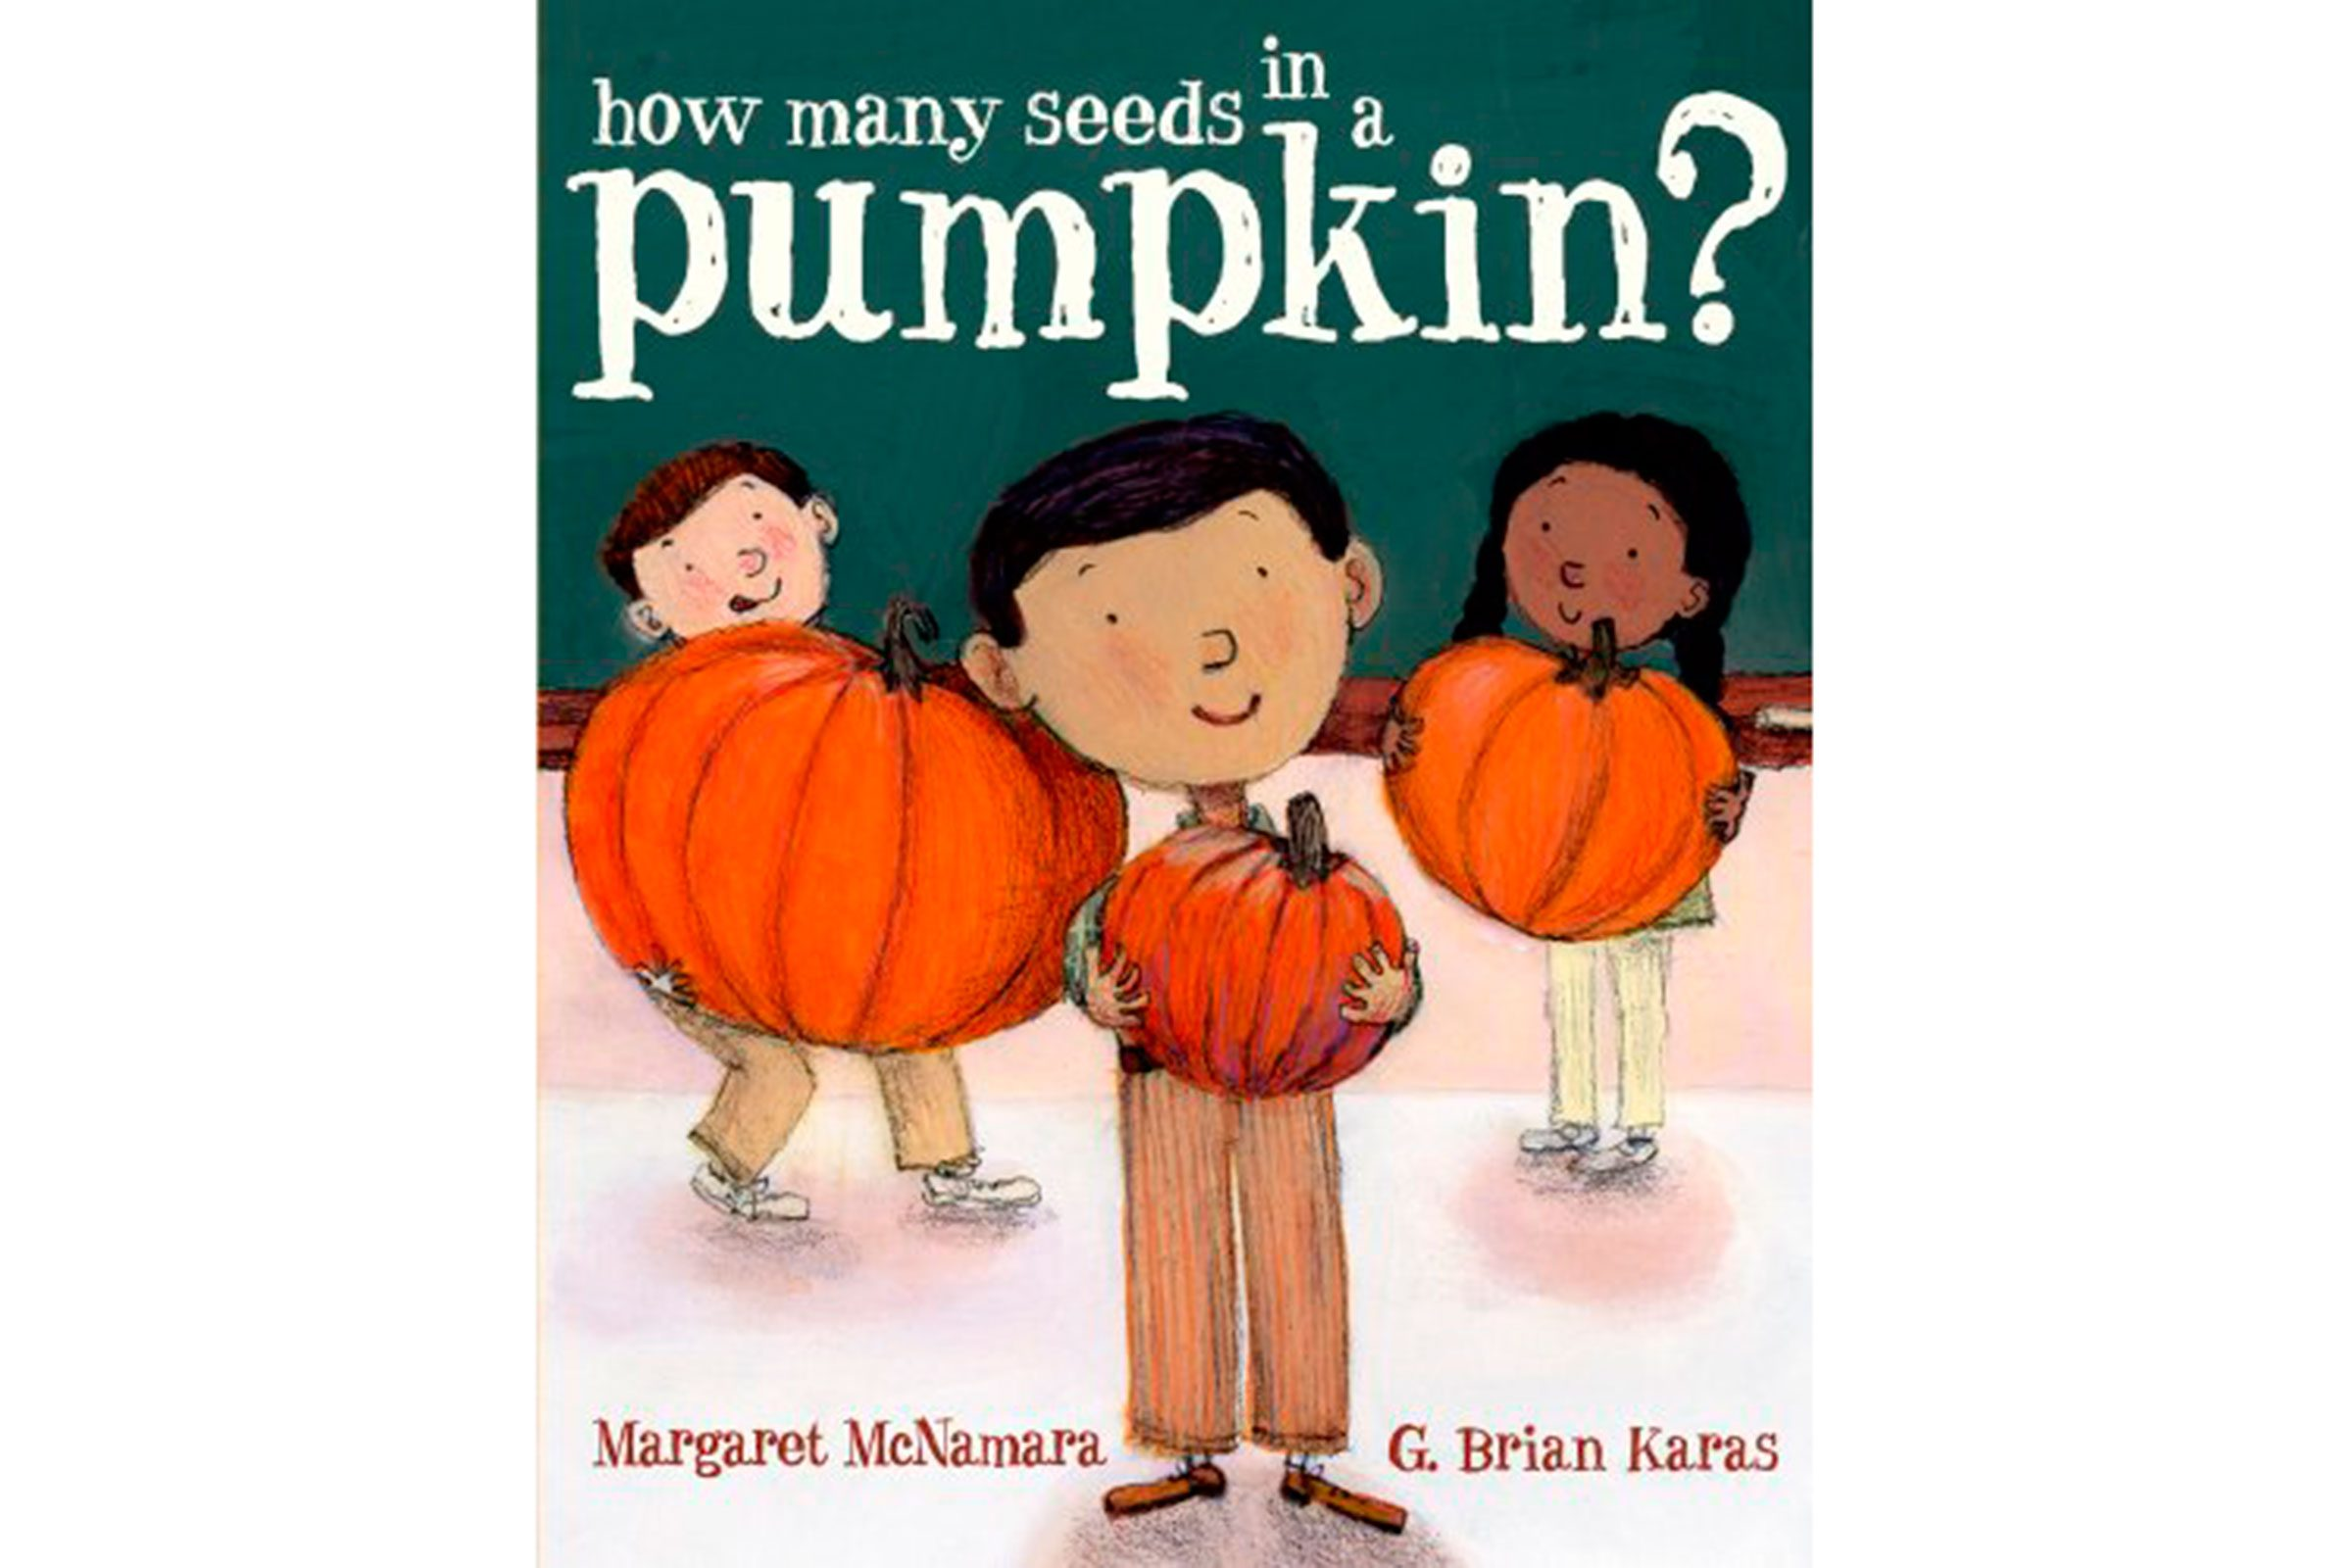 how many seeds in a pumpkin by margaret mcnamara and illustrated by g brian karas